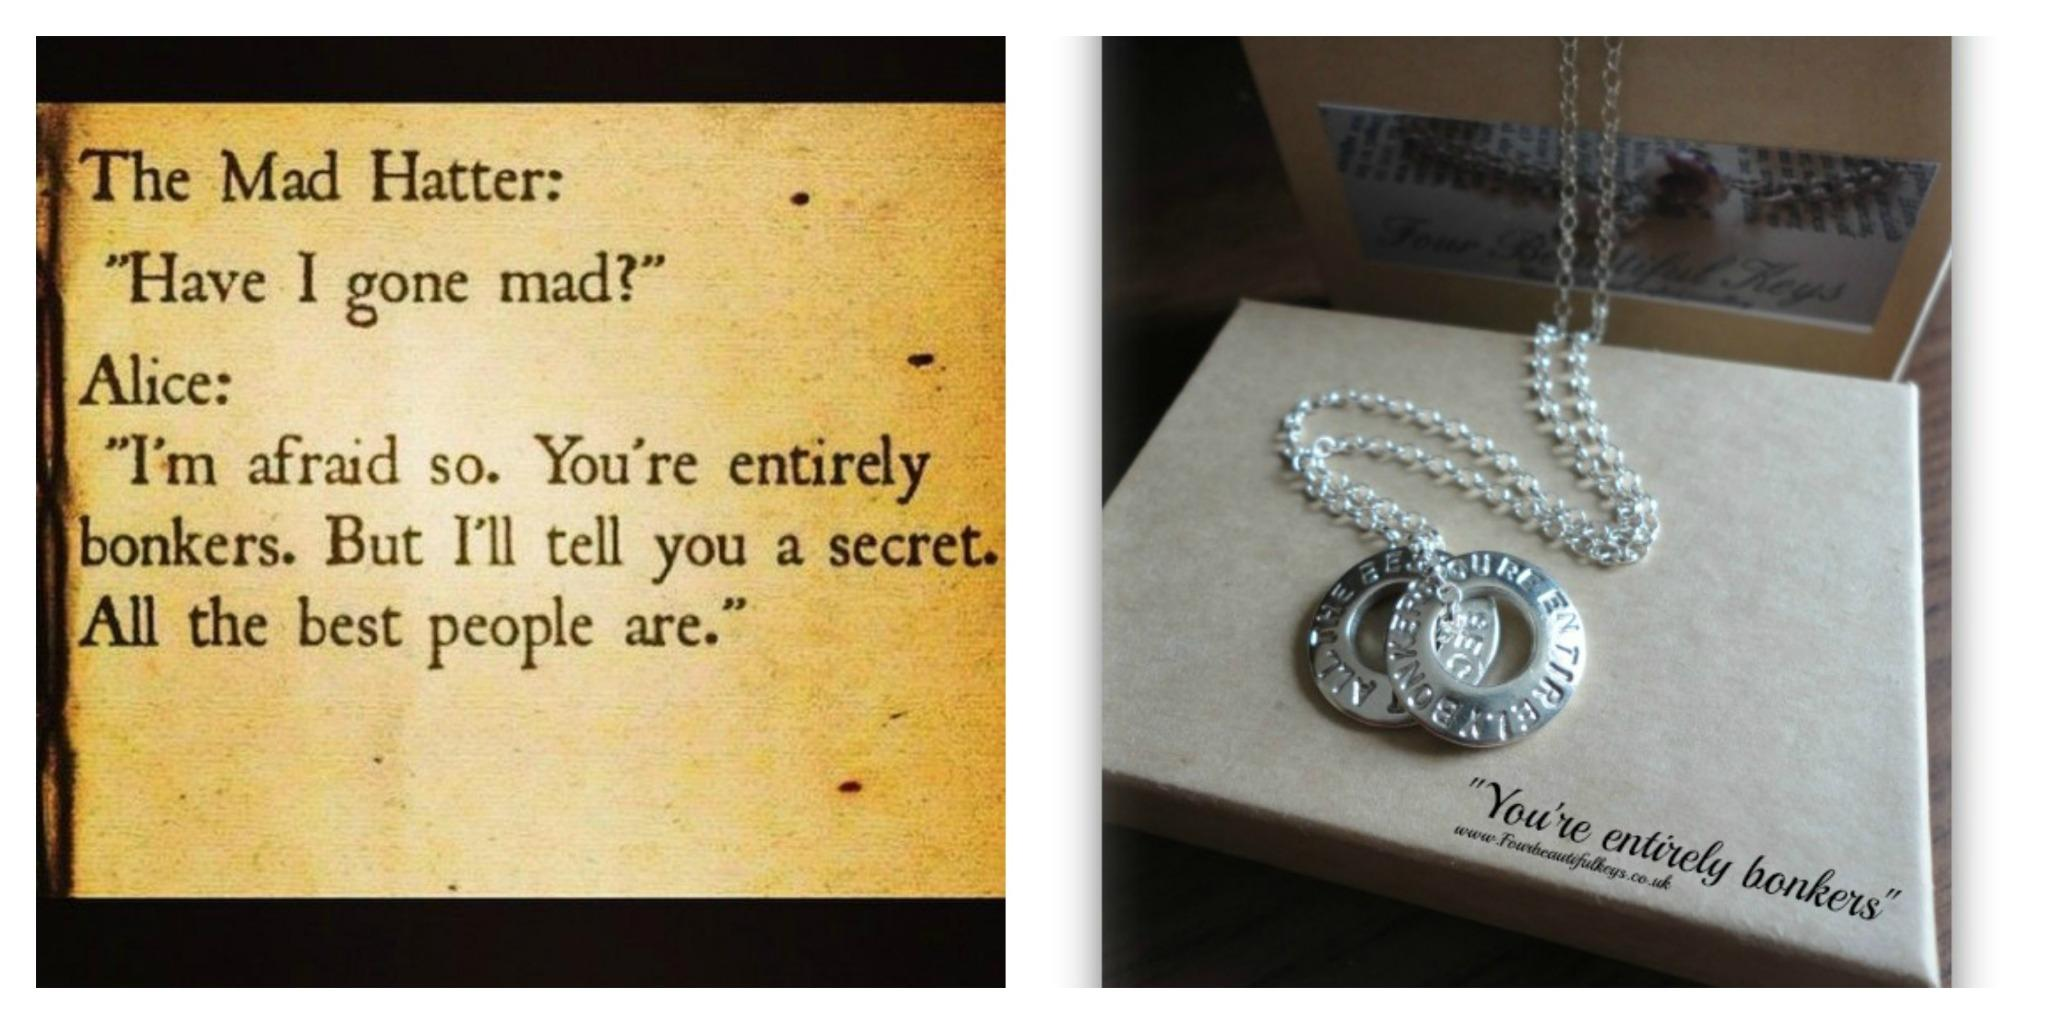 RT @4Beautifulkeys: A quote from a fantastic movie #aliceinwonderland Buy this beauty  here:http://t.co/itBOOPR4LV    http://t.co/6P0AVakB2…